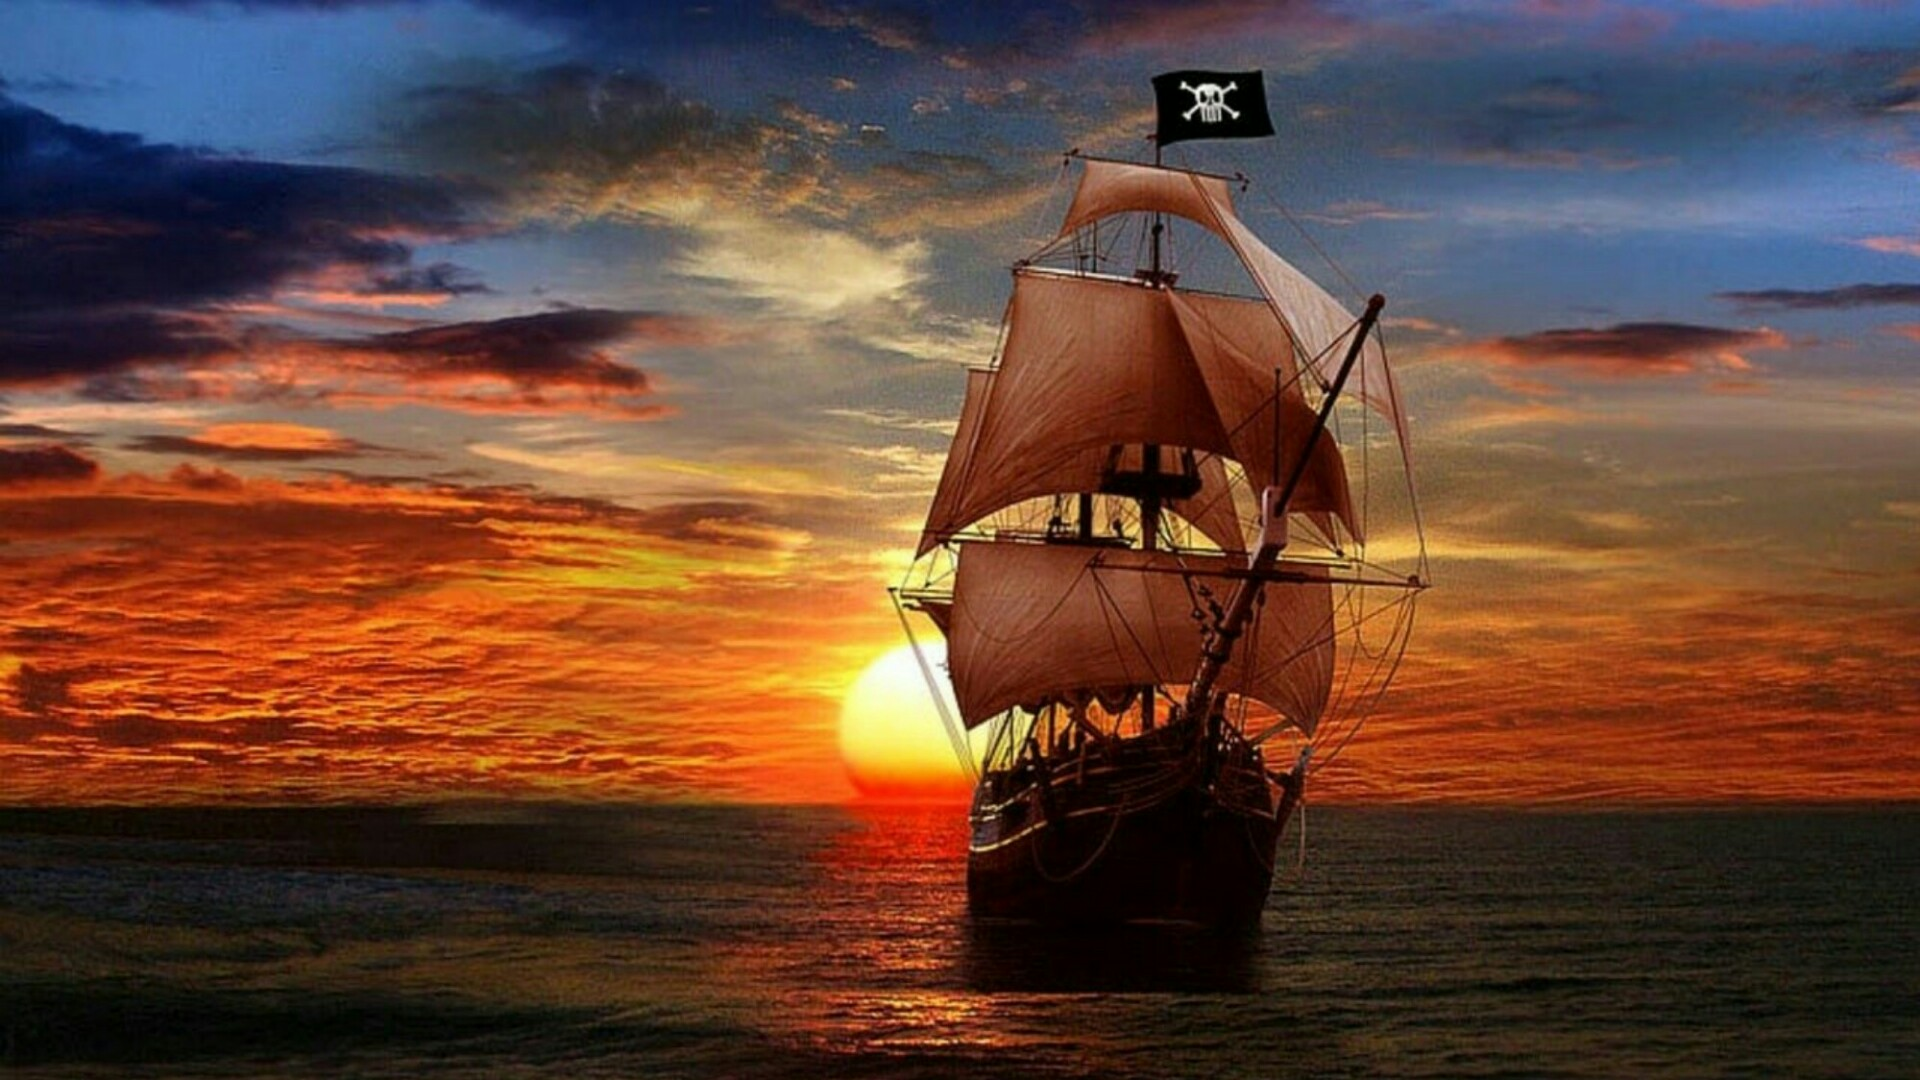 Pirate ship in the sunset - Fantasy art wallpaper